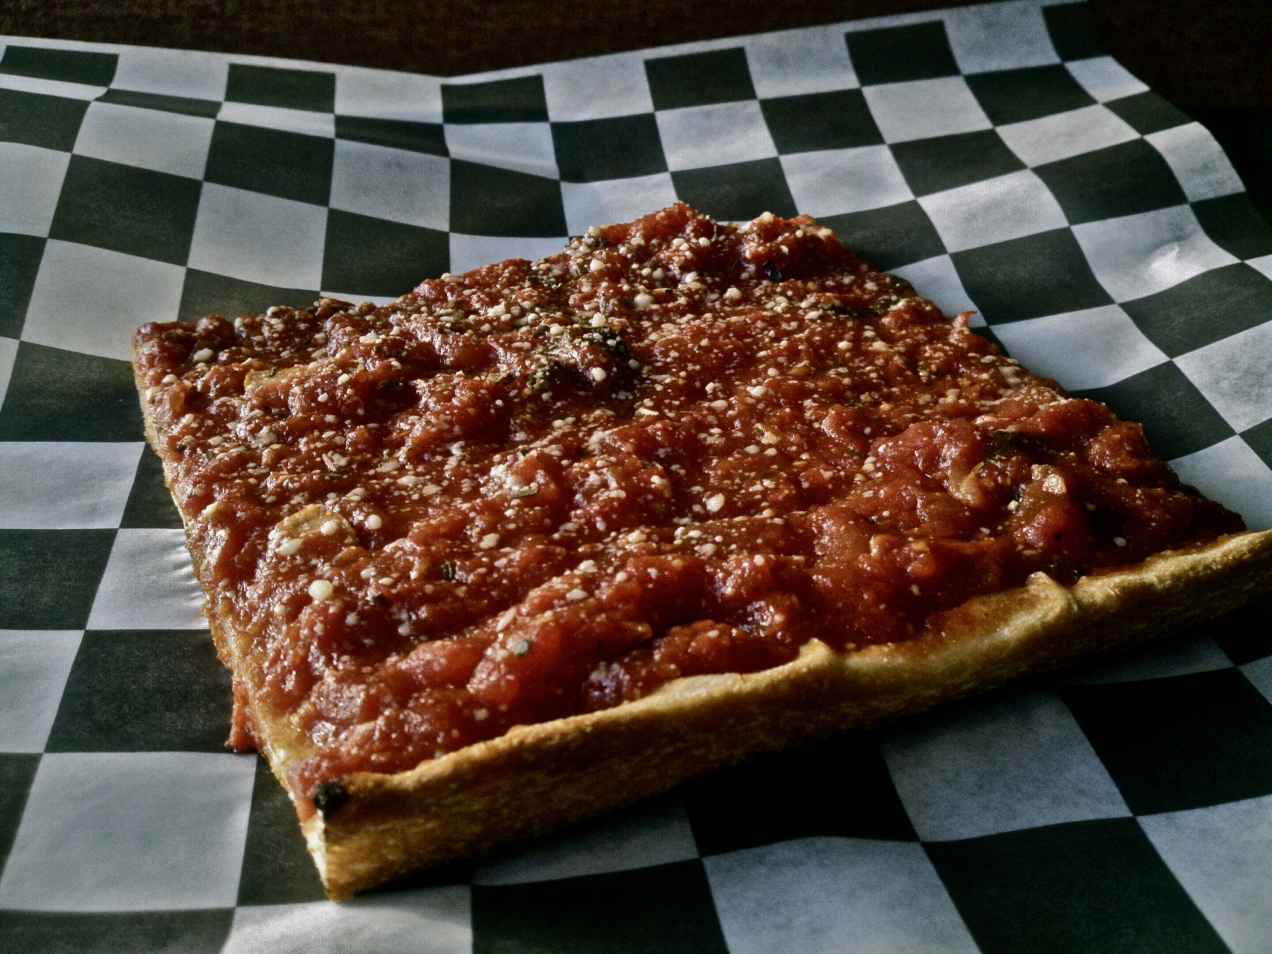 Tony Roni's Tomato Pie - Willow Grove, PA